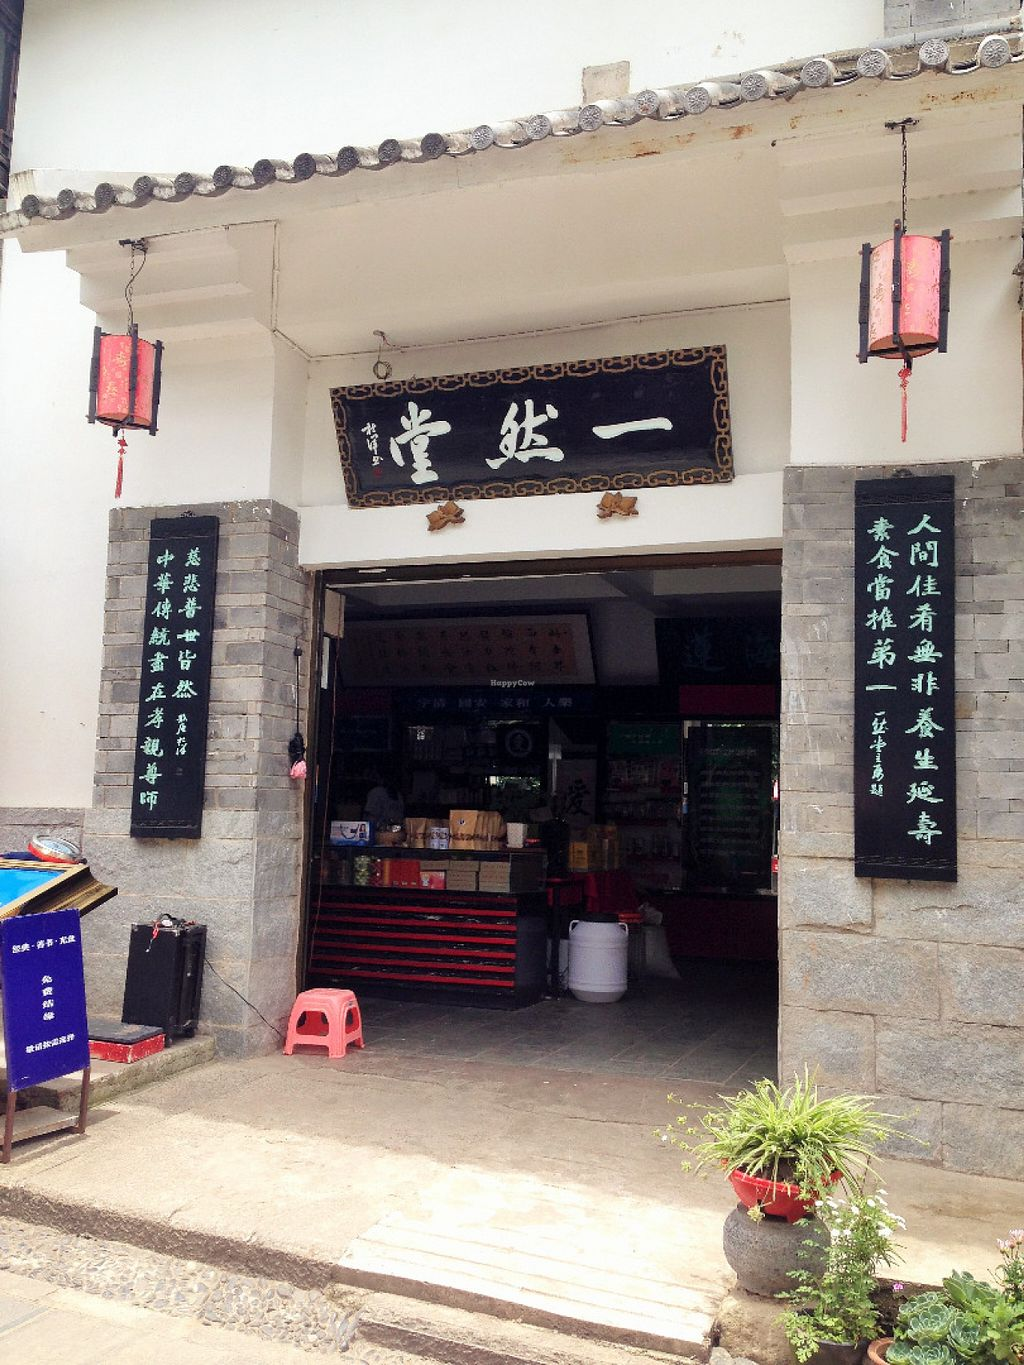 """Photo of Yi Ran Tang Vegetarian Buffet  by <a href=""""/members/profile/Stevie"""">Stevie</a> <br/>Shop front <br/> June 29, 2016  - <a href='/contact/abuse/image/32441/156785'>Report</a>"""